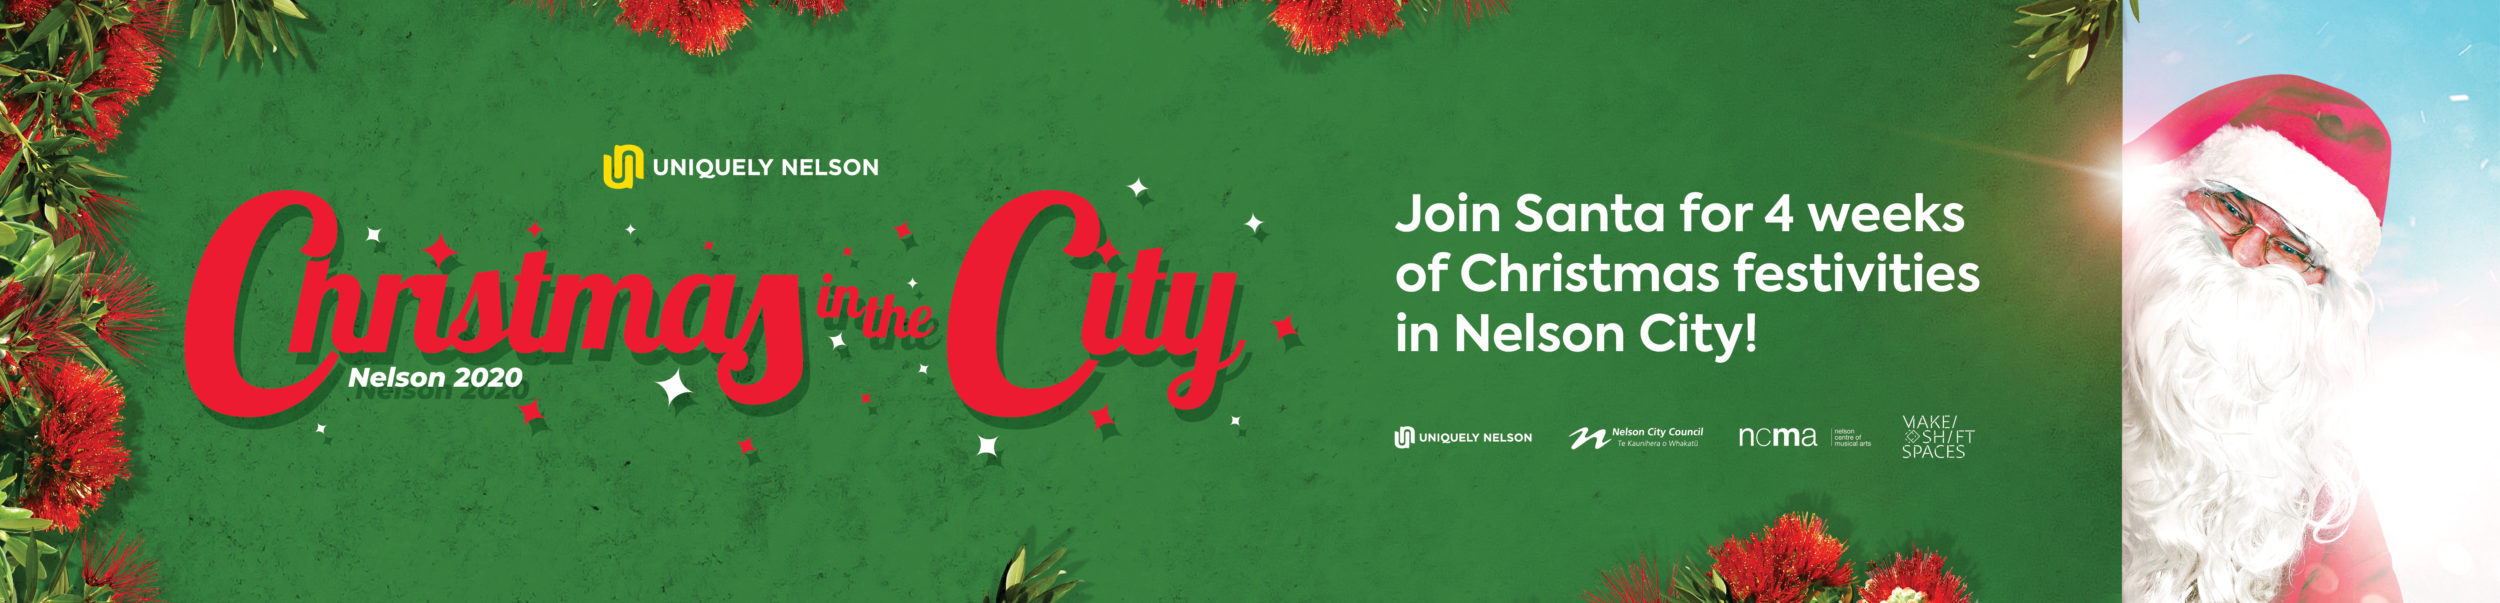 4 week Christmas Festive at the beautiful city, Nelson with Christmas in the city